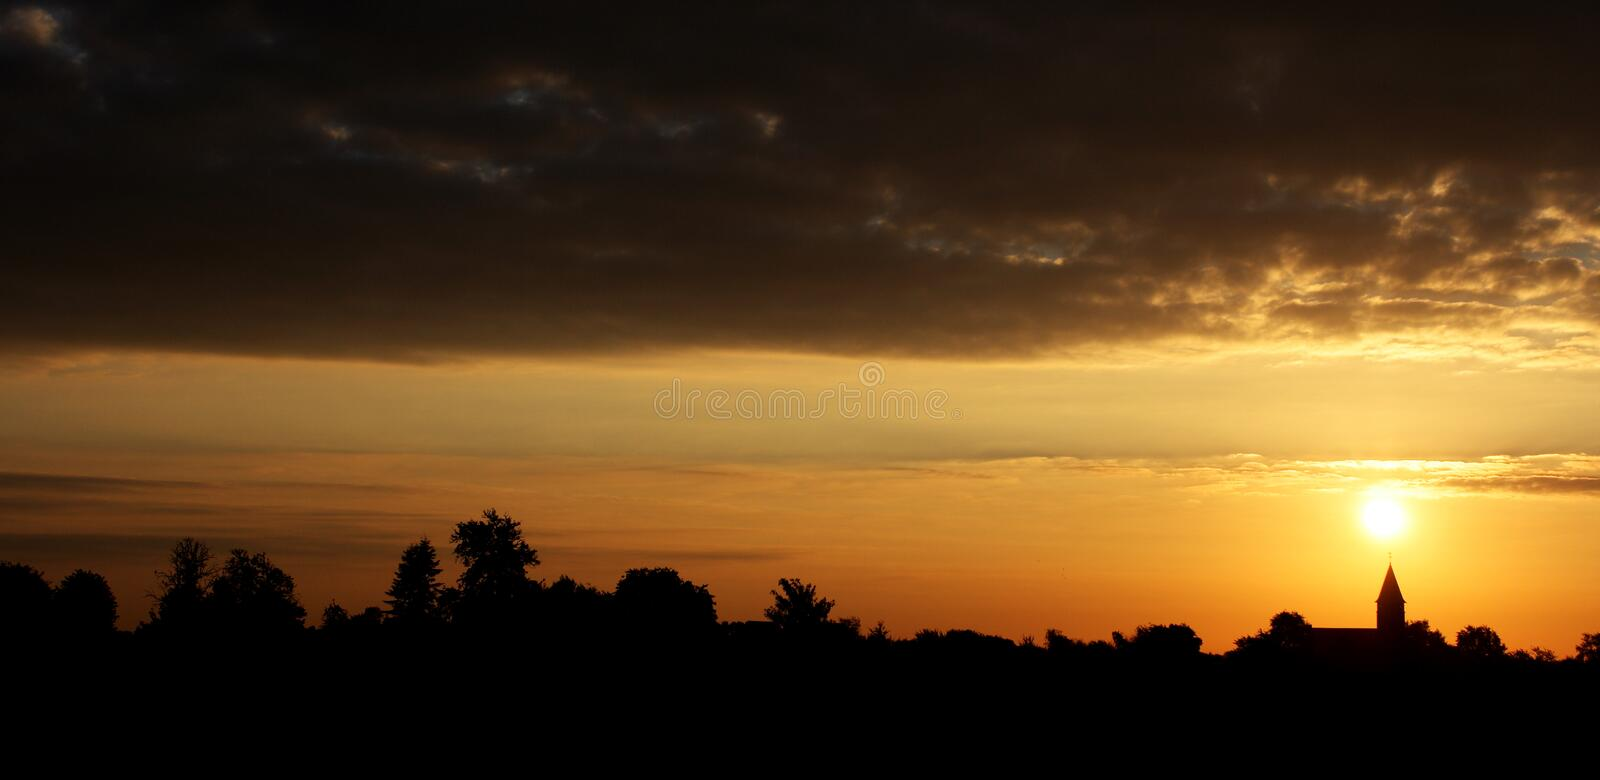 Download Sun rise stock image. Image of rise, dramatic, nature - 3407227